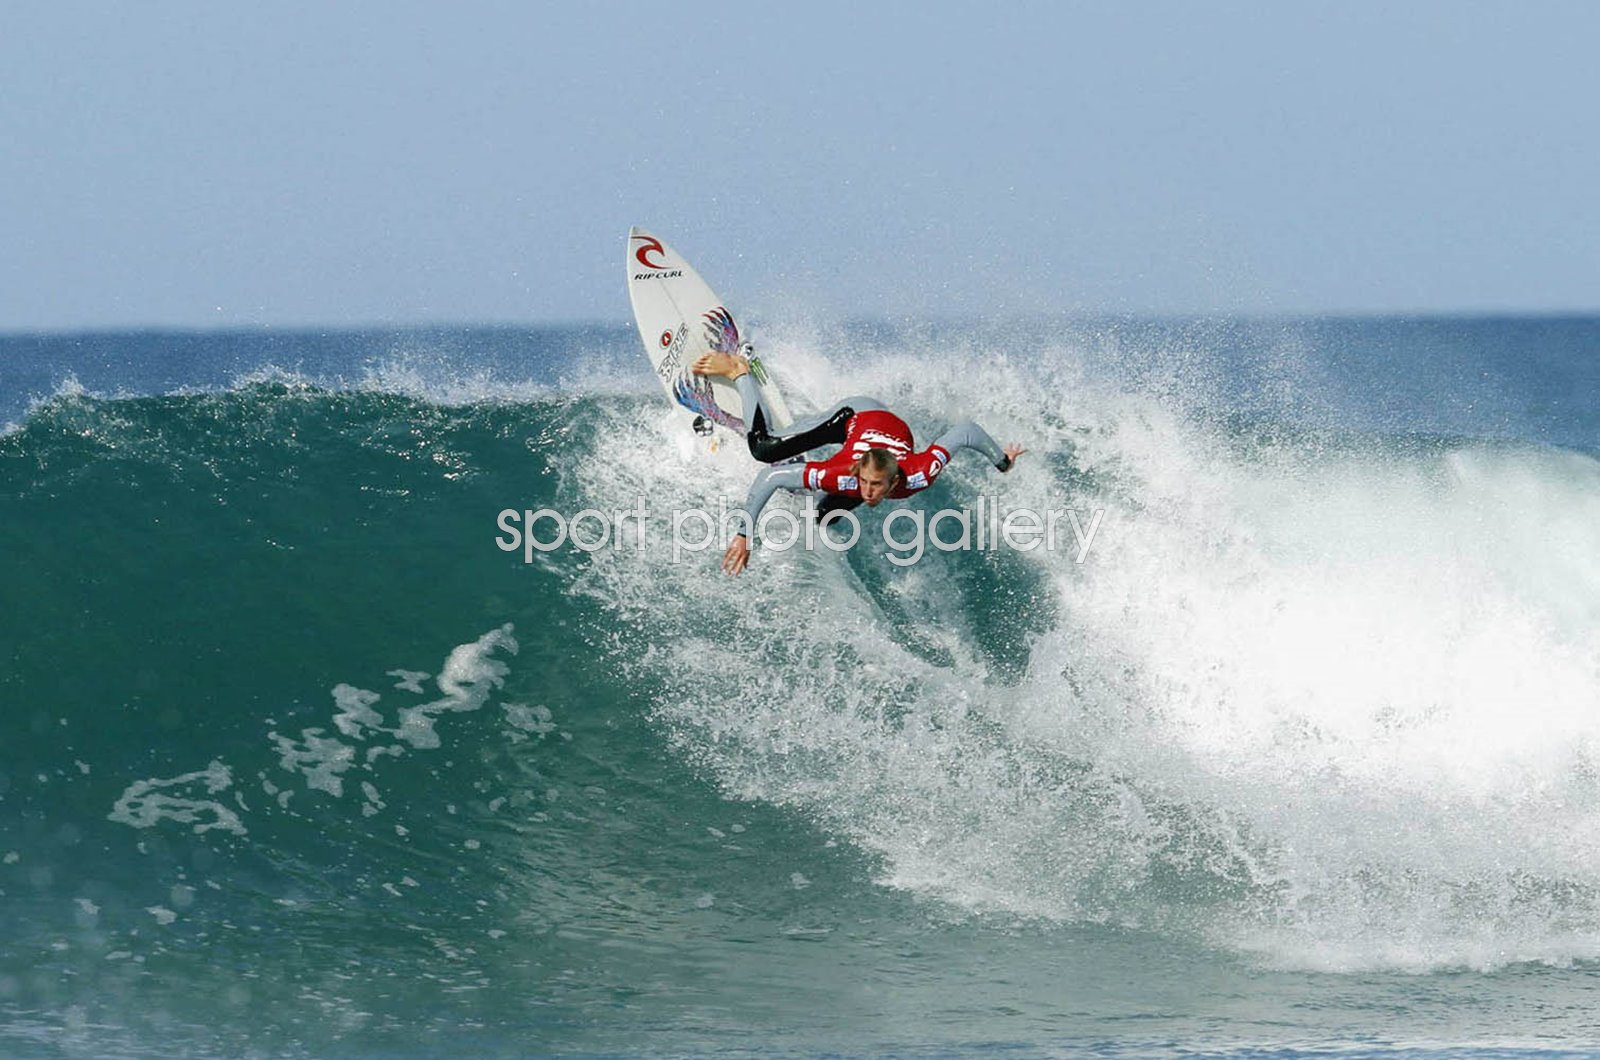 Owen Wright Surfing Jeffreys Bay South Africa 2010